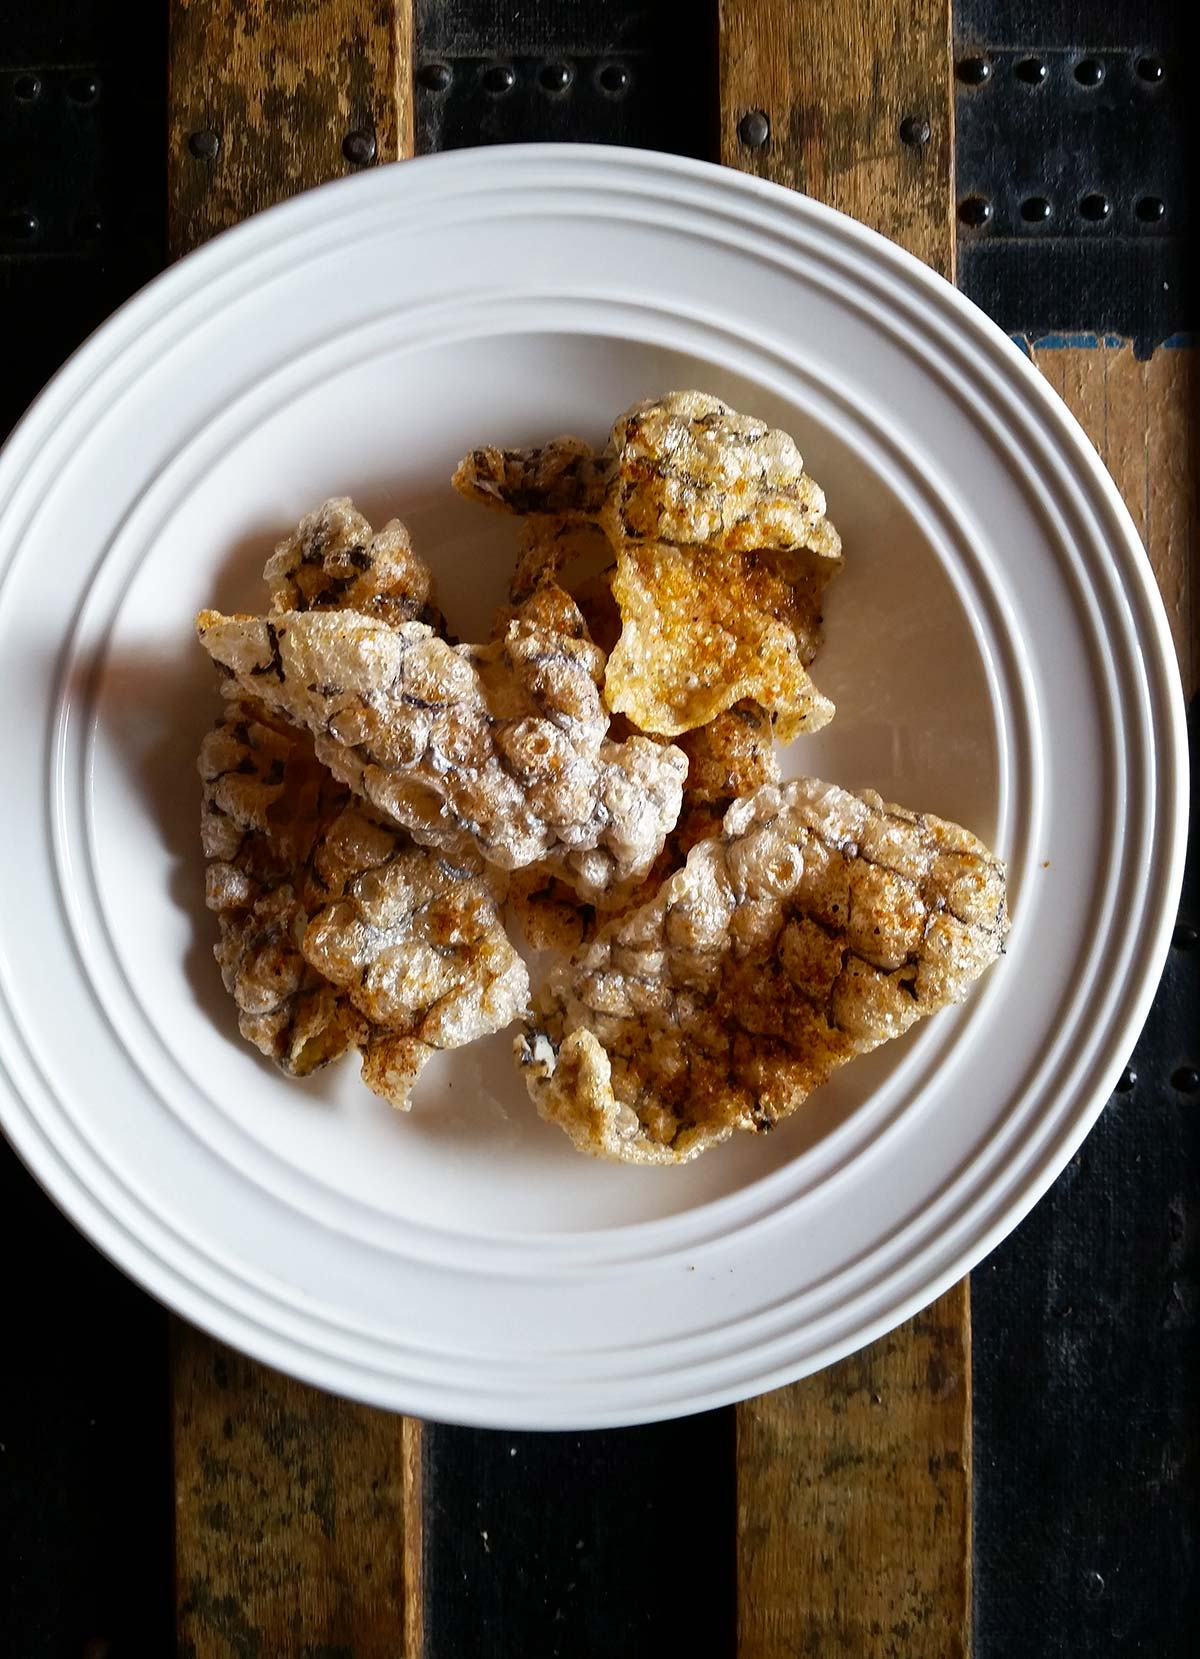 Tripletail fish skin chips in a bowl